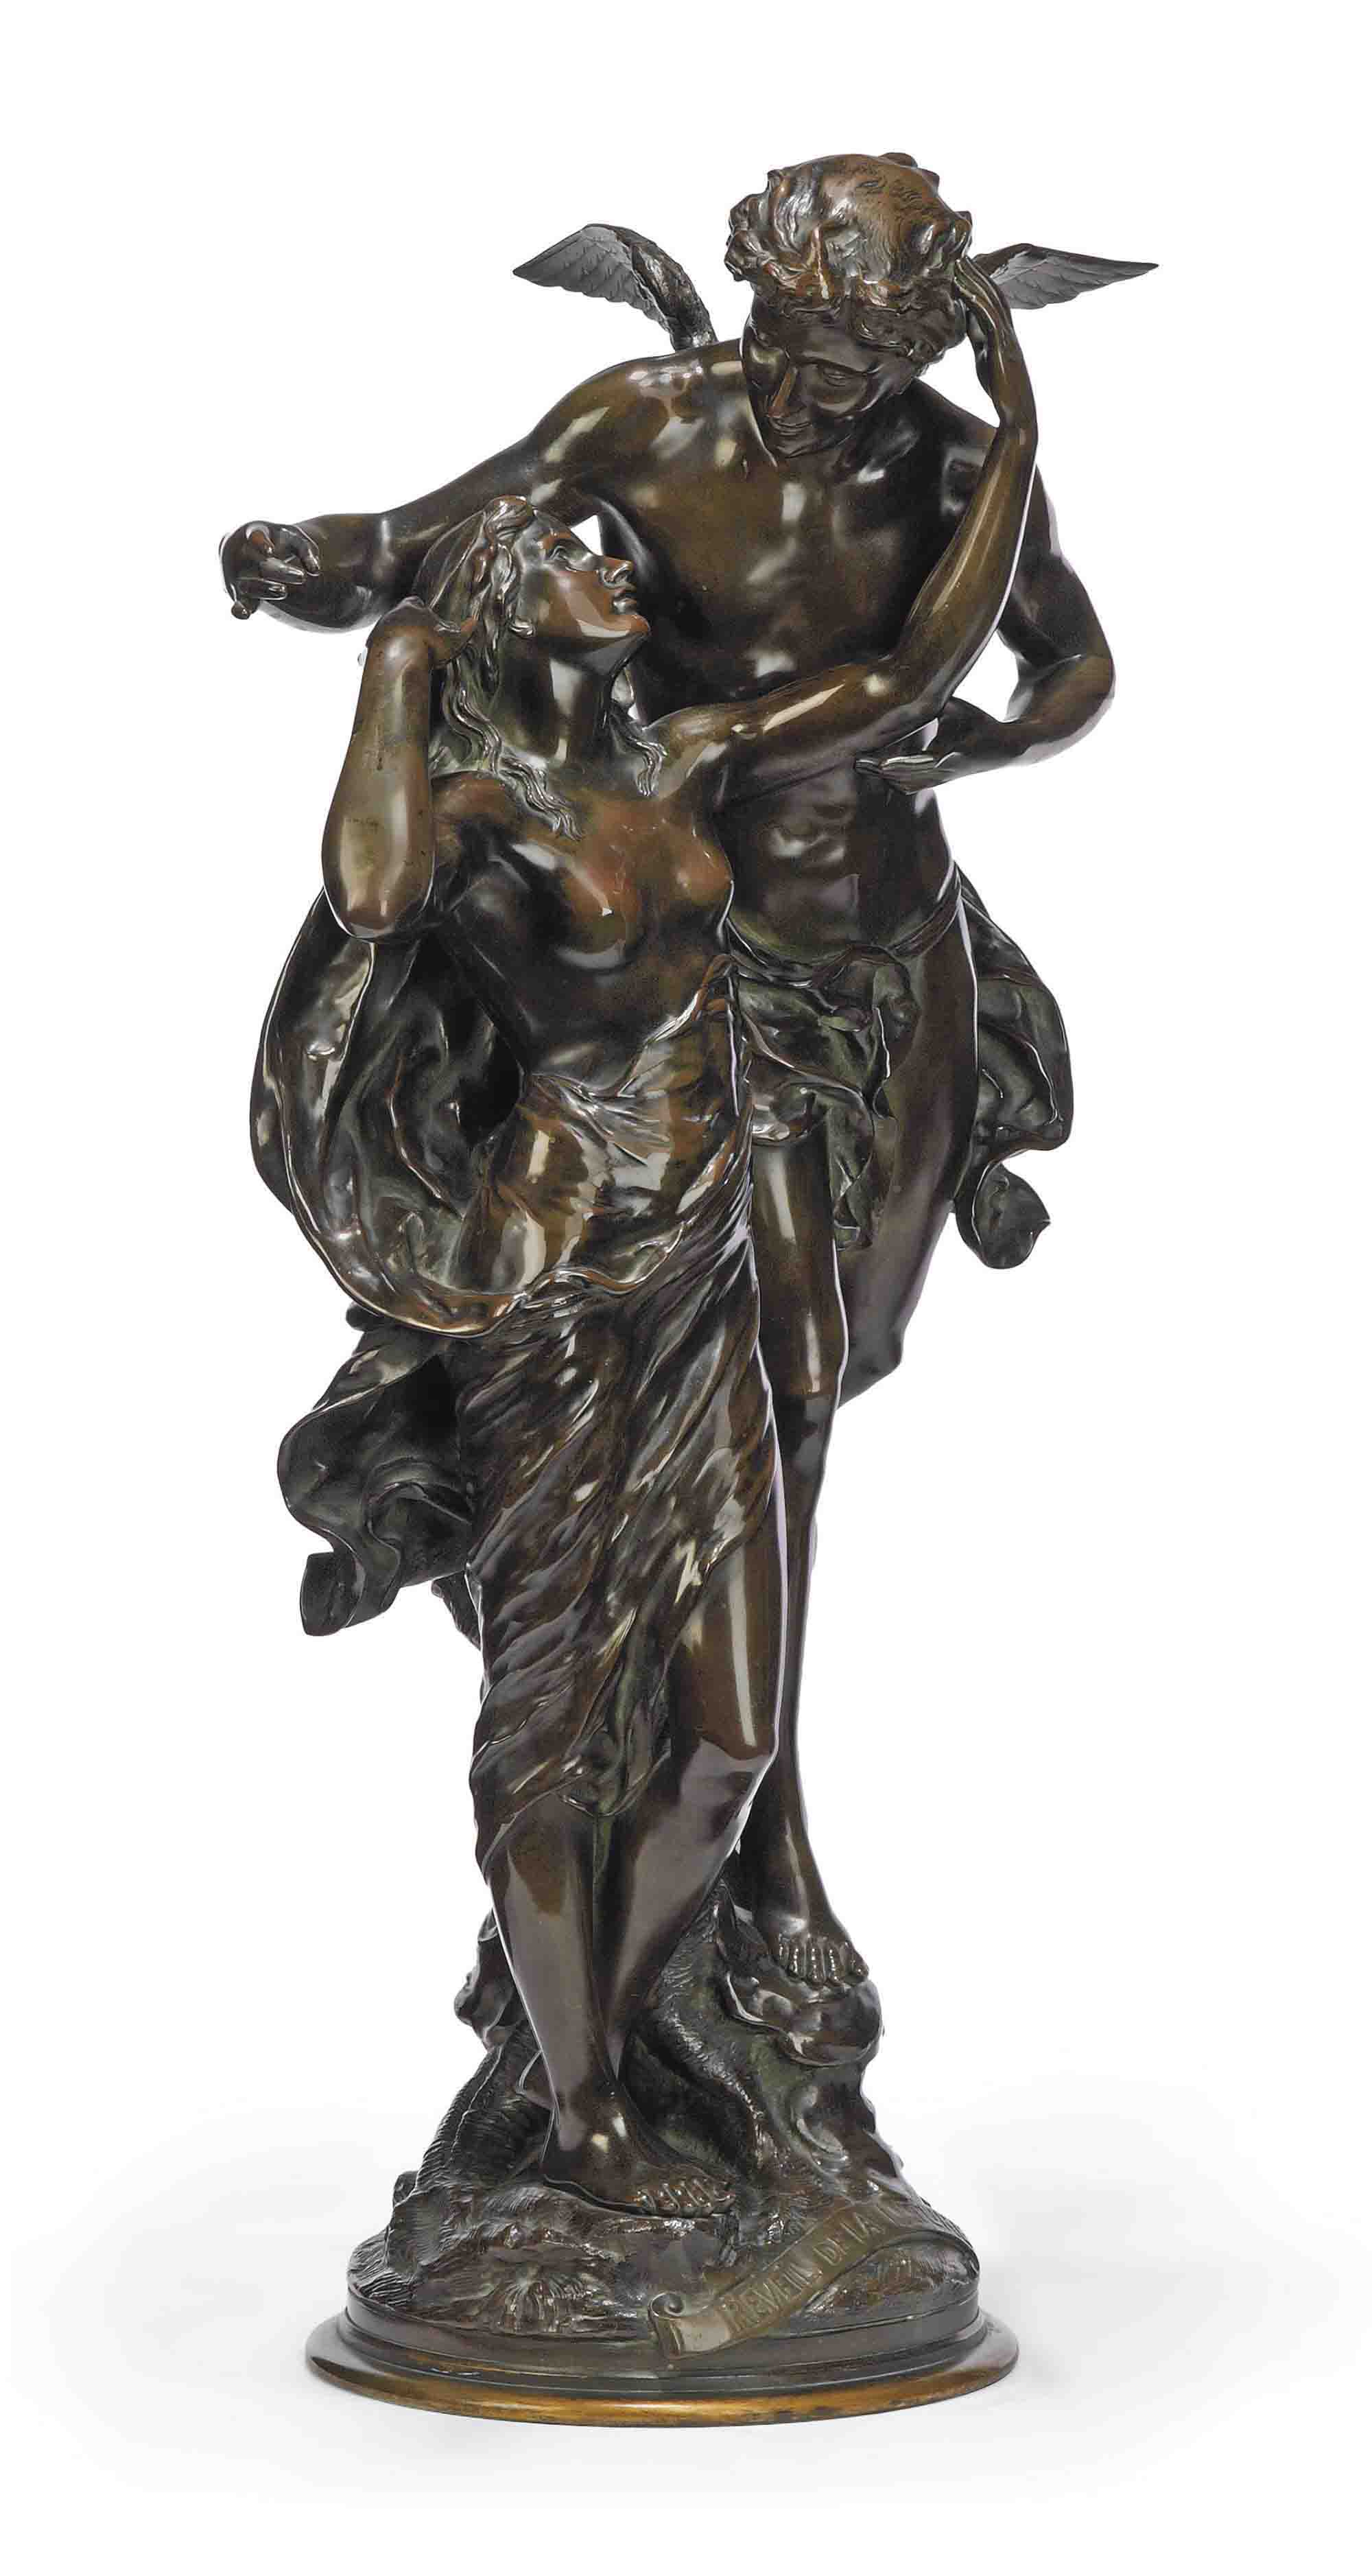 A FRENCH BRONZE GROUP OF 'LA REVEIL DE LA NATURE'